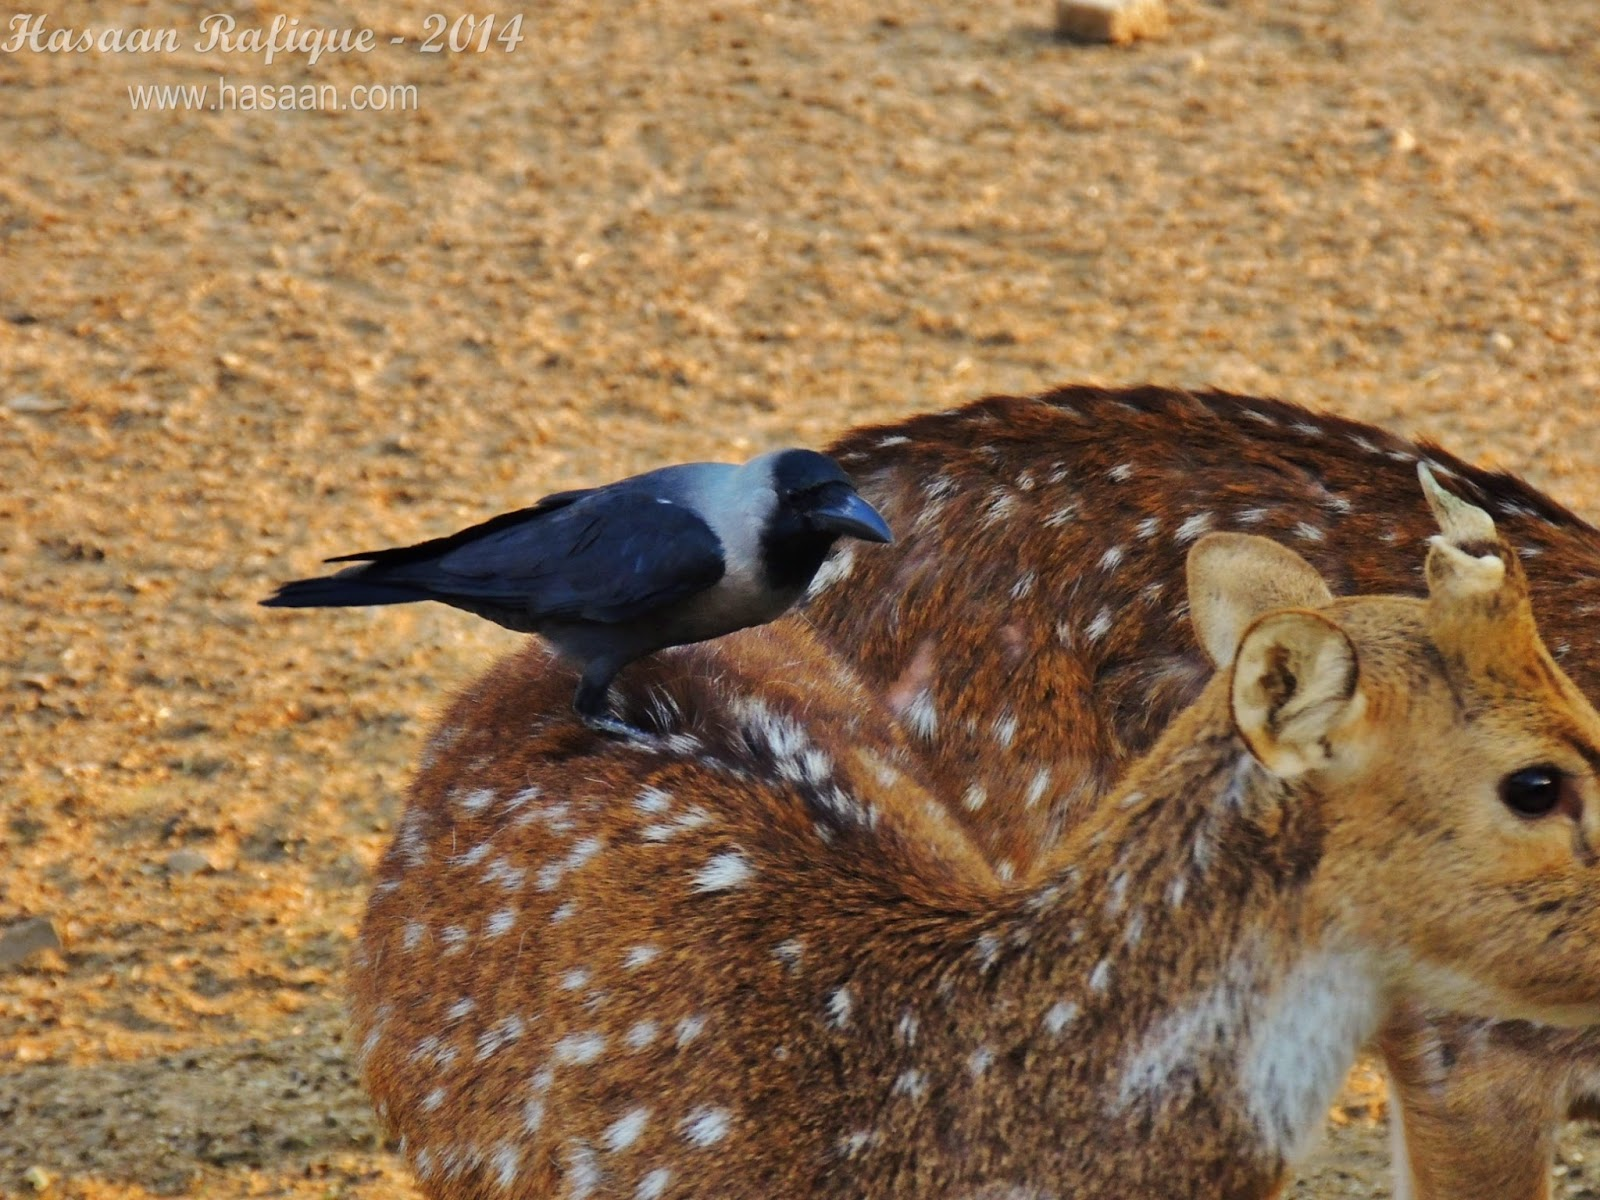 A crow sits perched on a spotted deer.